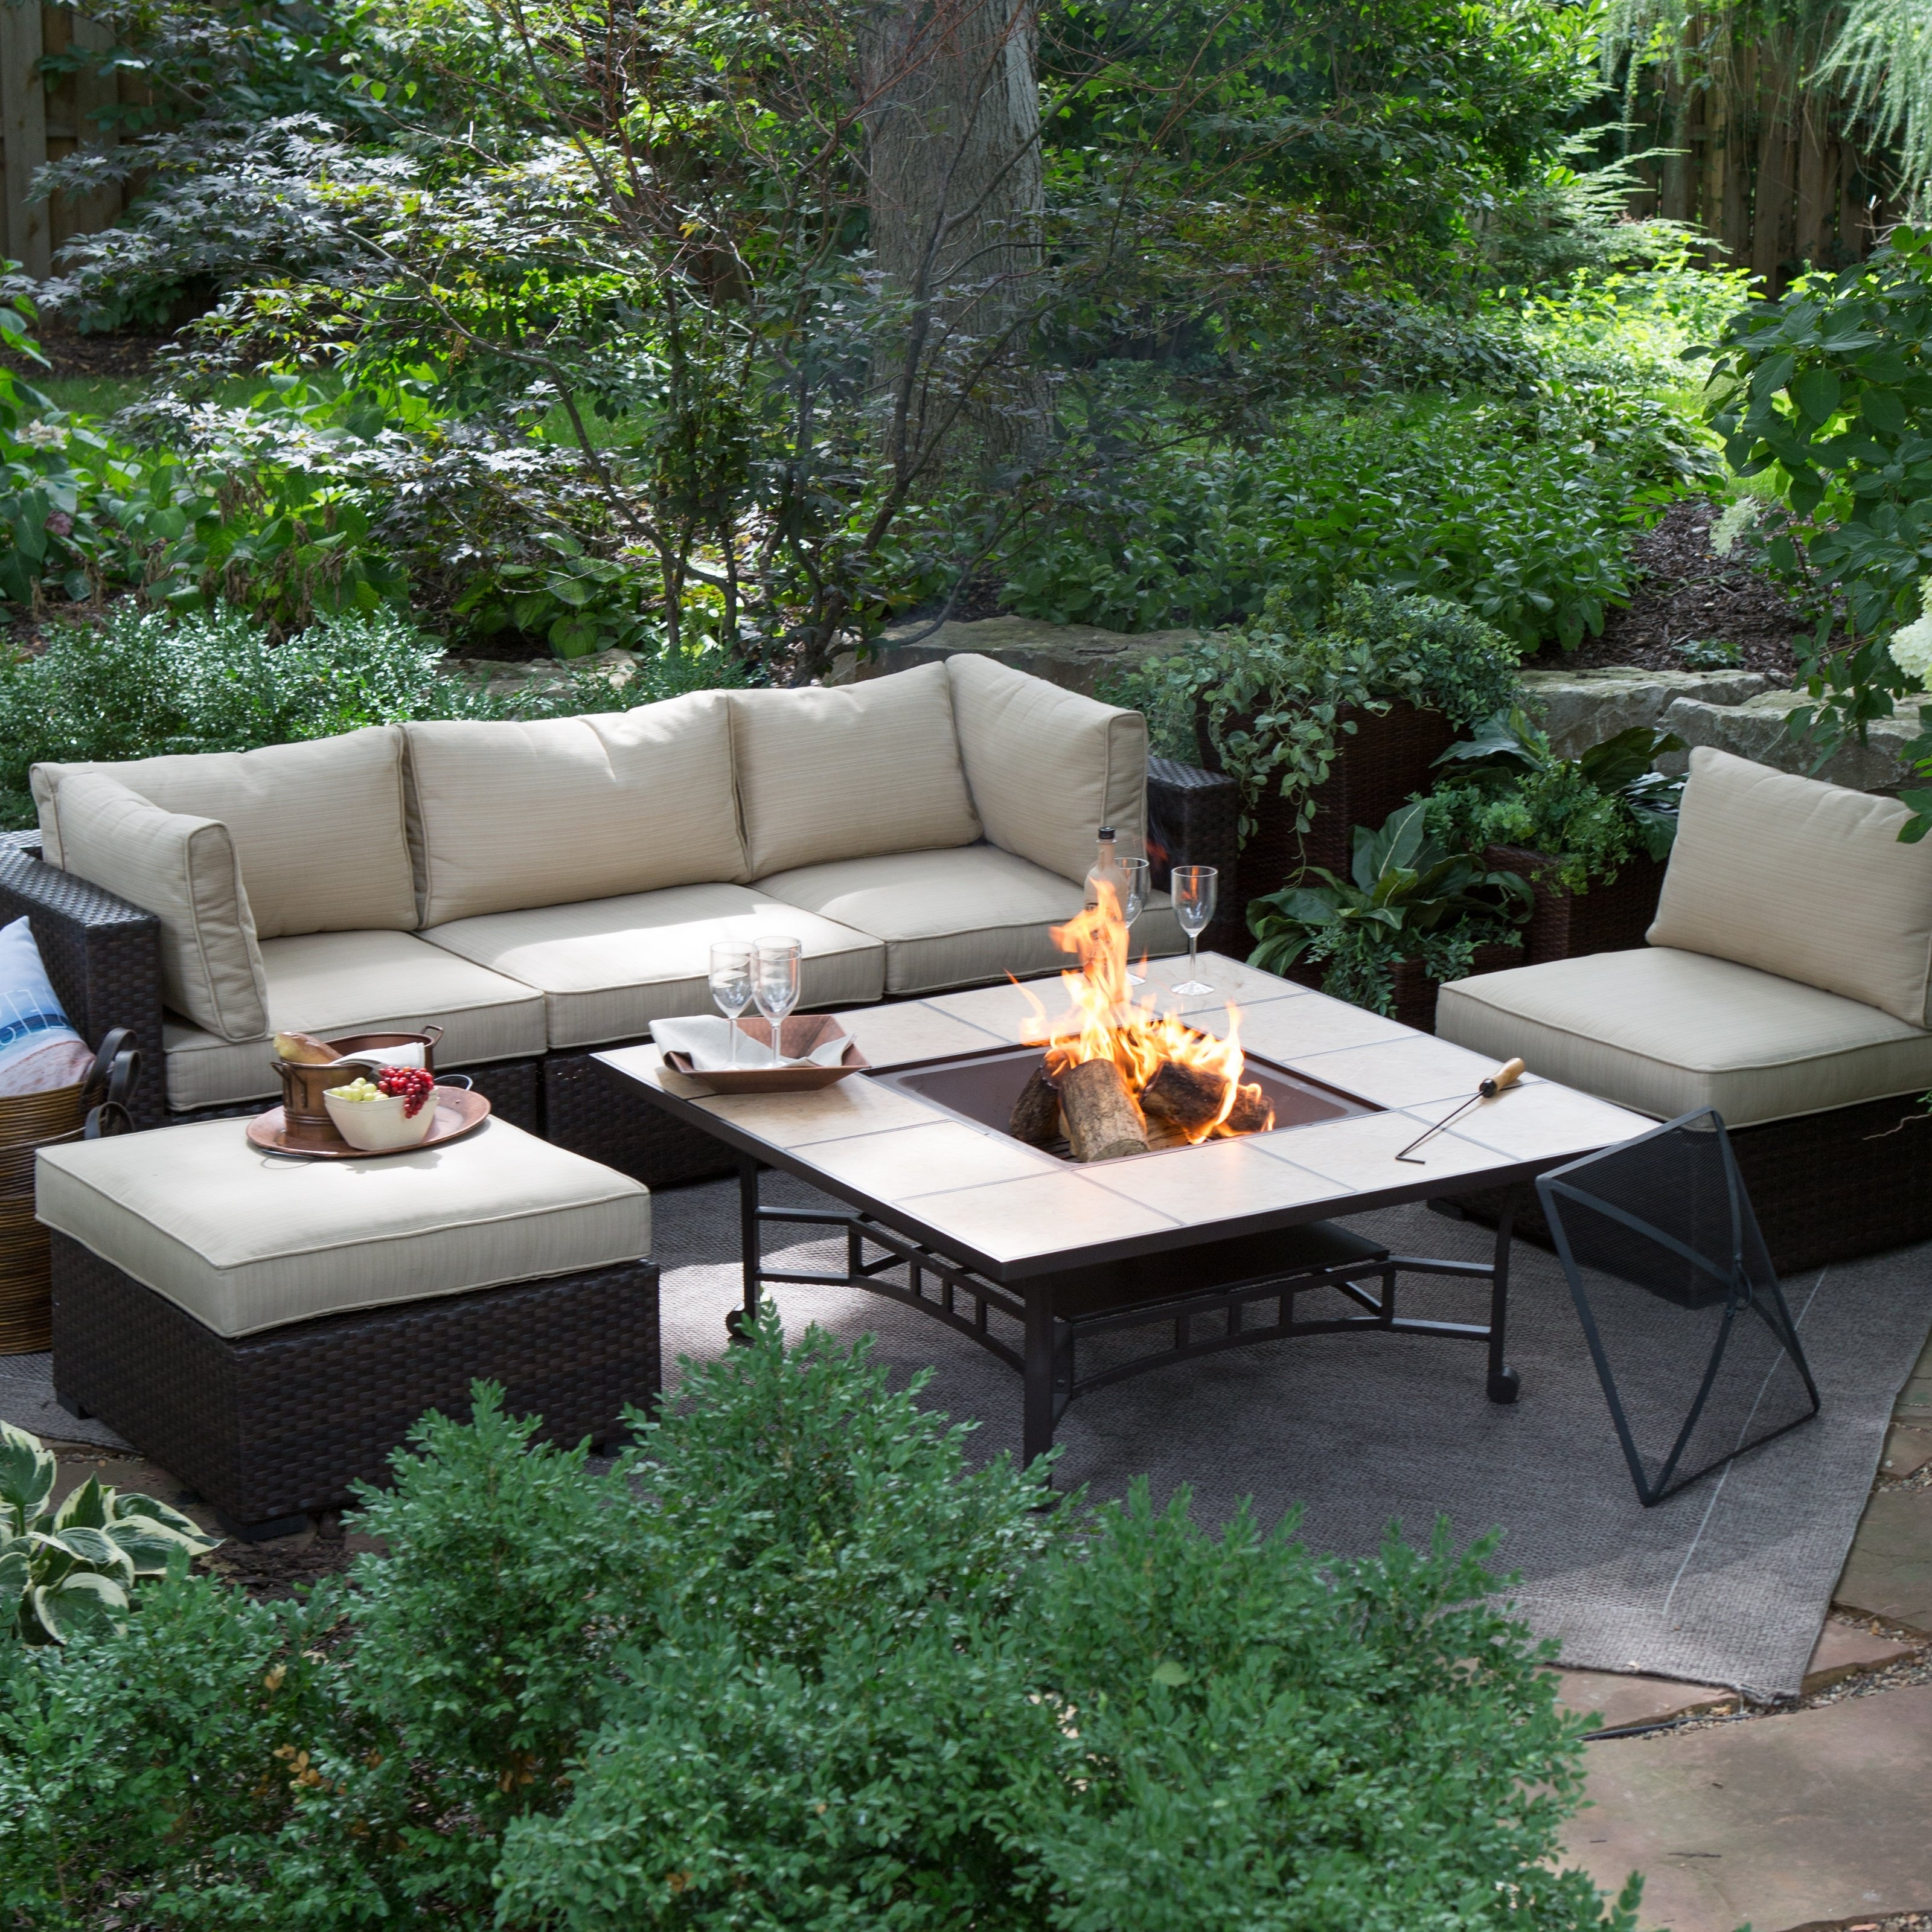 Well Known Hayneedle Patio Conversation Sets In Belham Living Marcella All Weather Wicker 50 In (View 2 of 15)